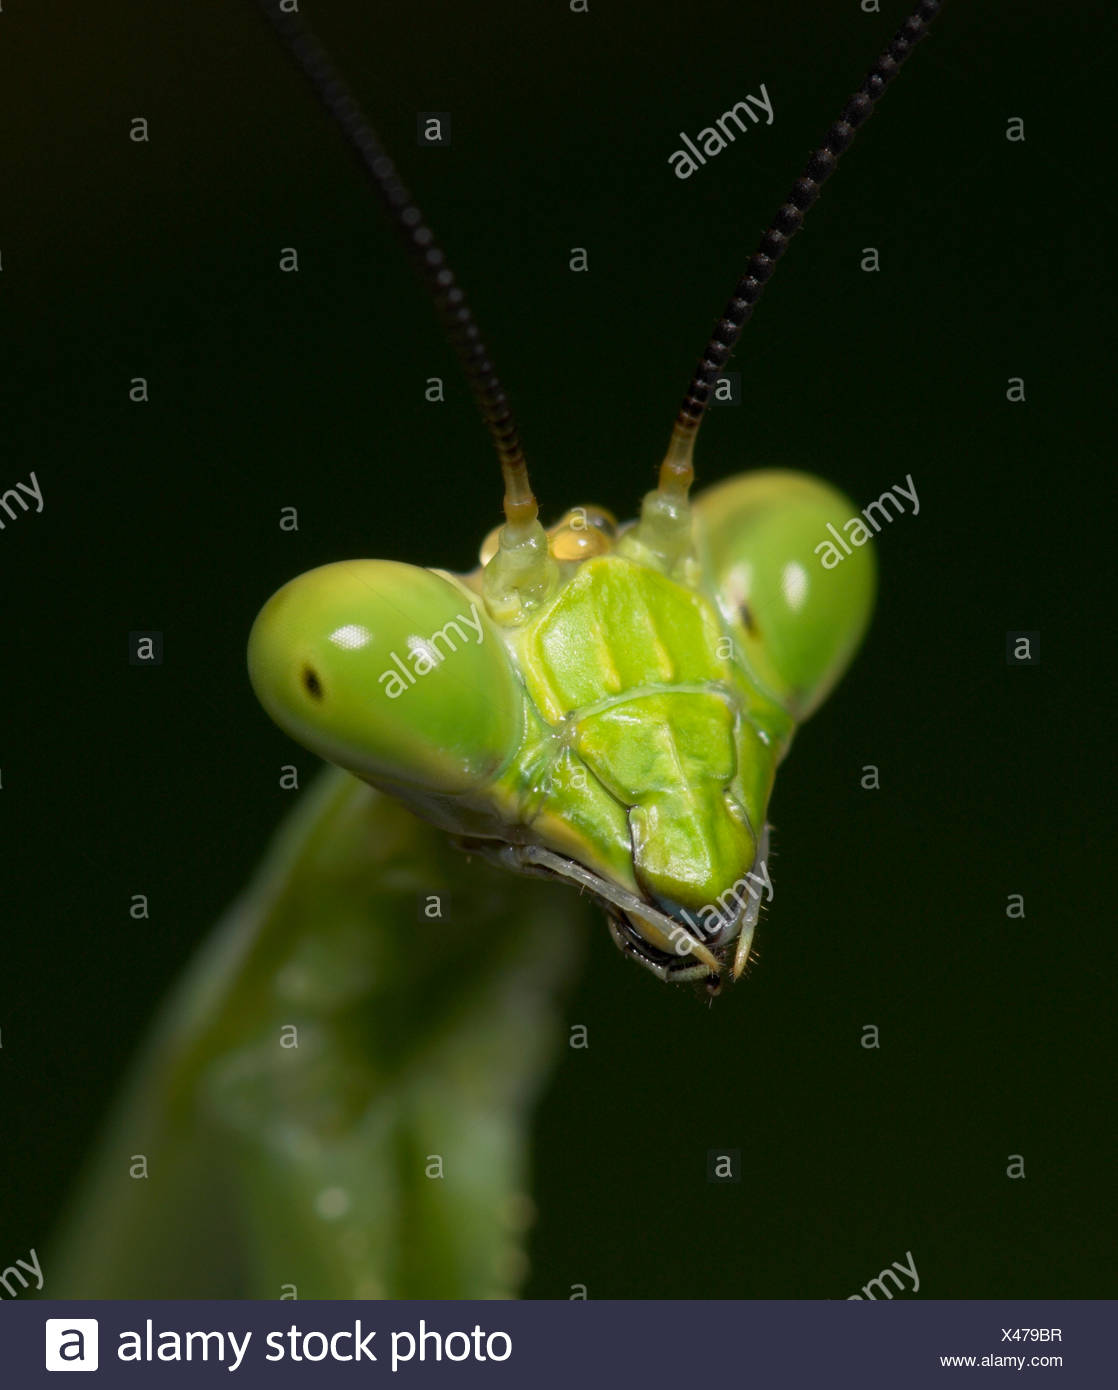 Praying Mantis FamilyMantidae Costa Rica Photo Stock